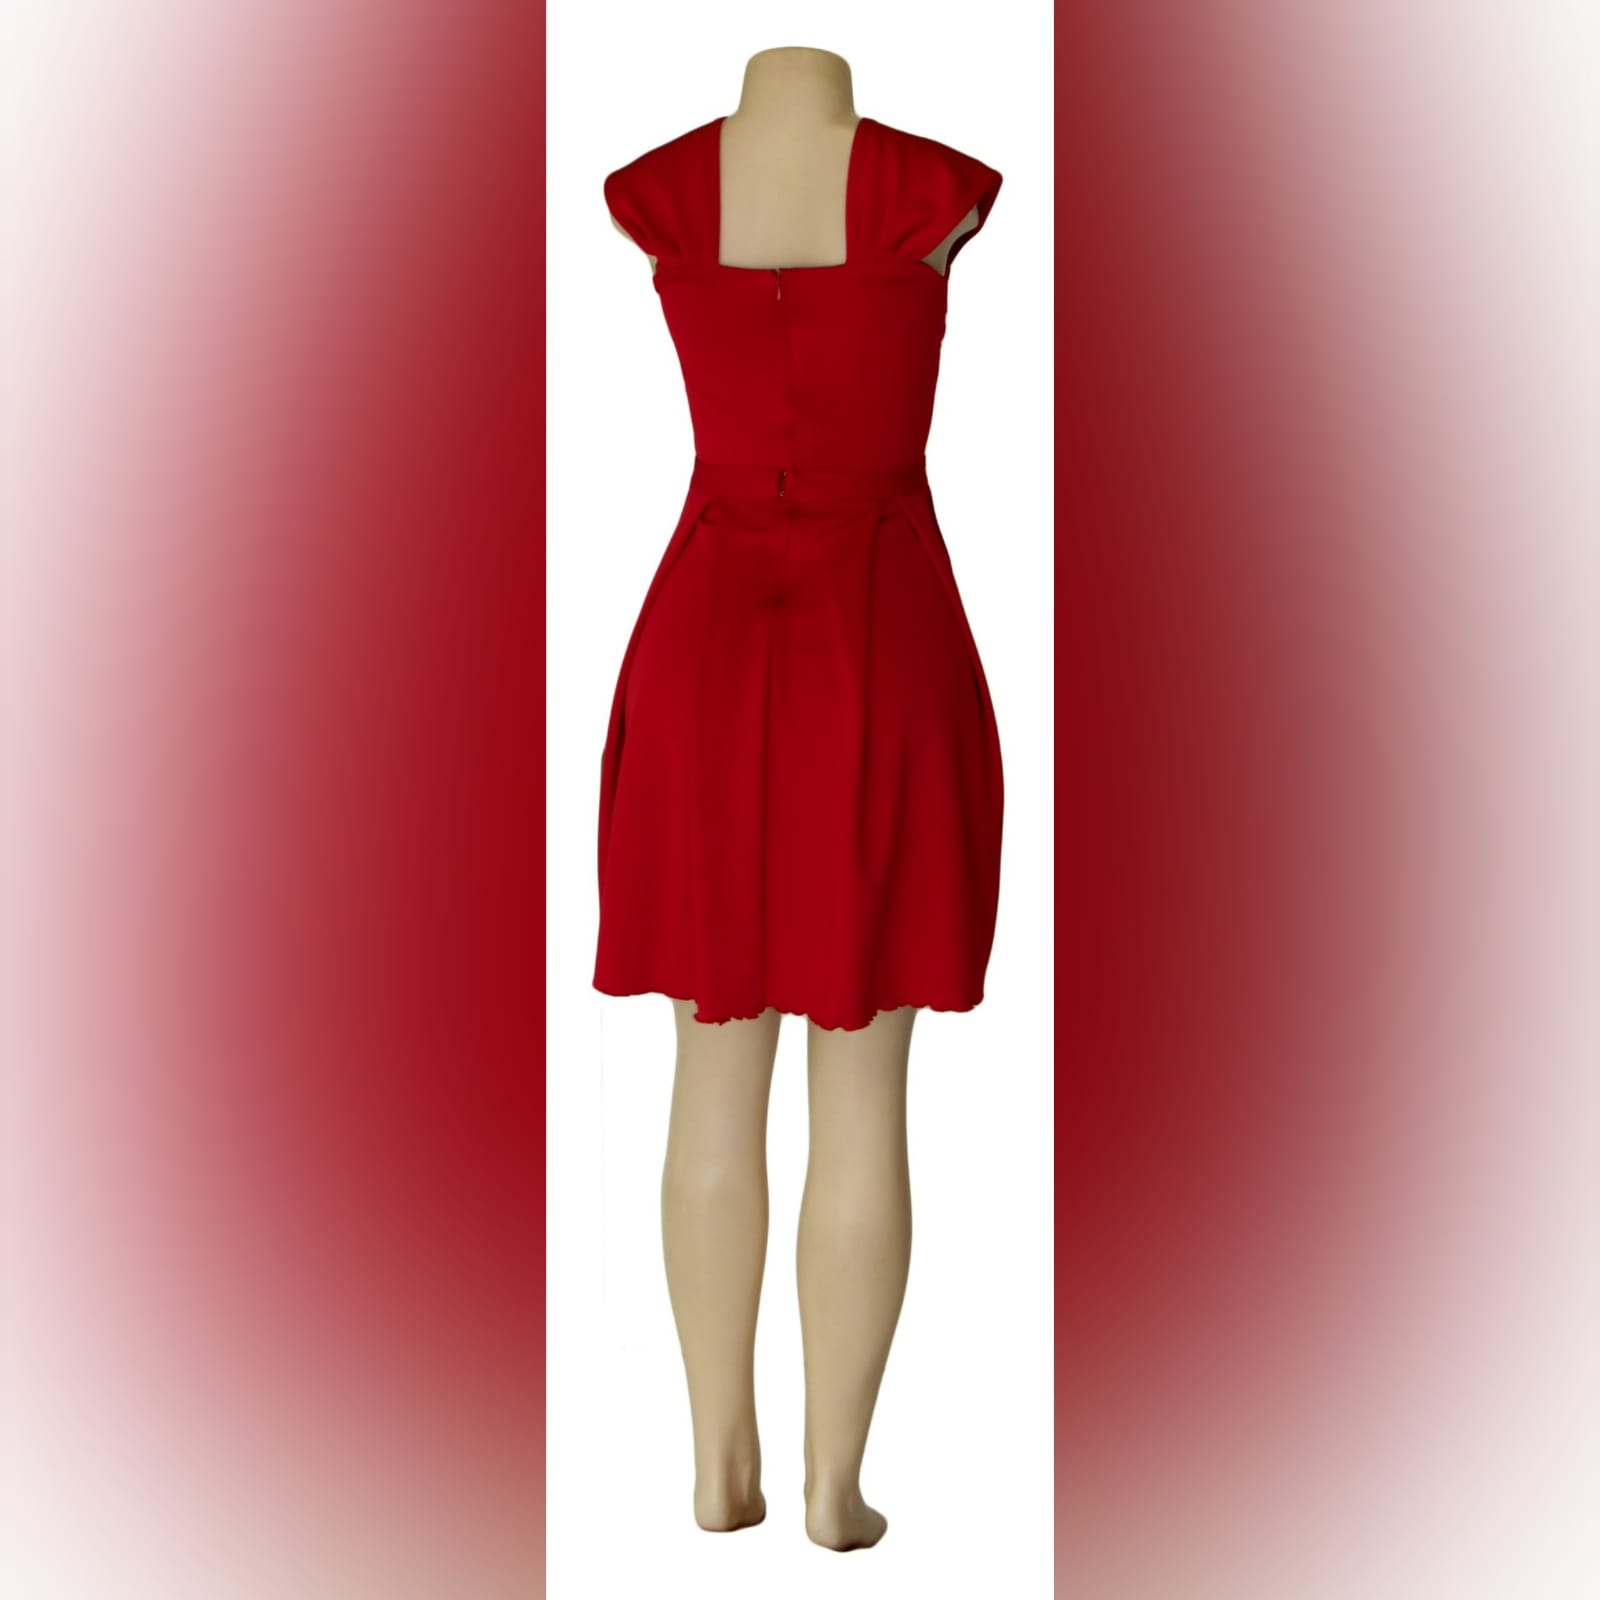 Short red pleated evening dress 3 short red pleated evening dress with a pleated sweetheart neckline and a detachable belt with bow detail